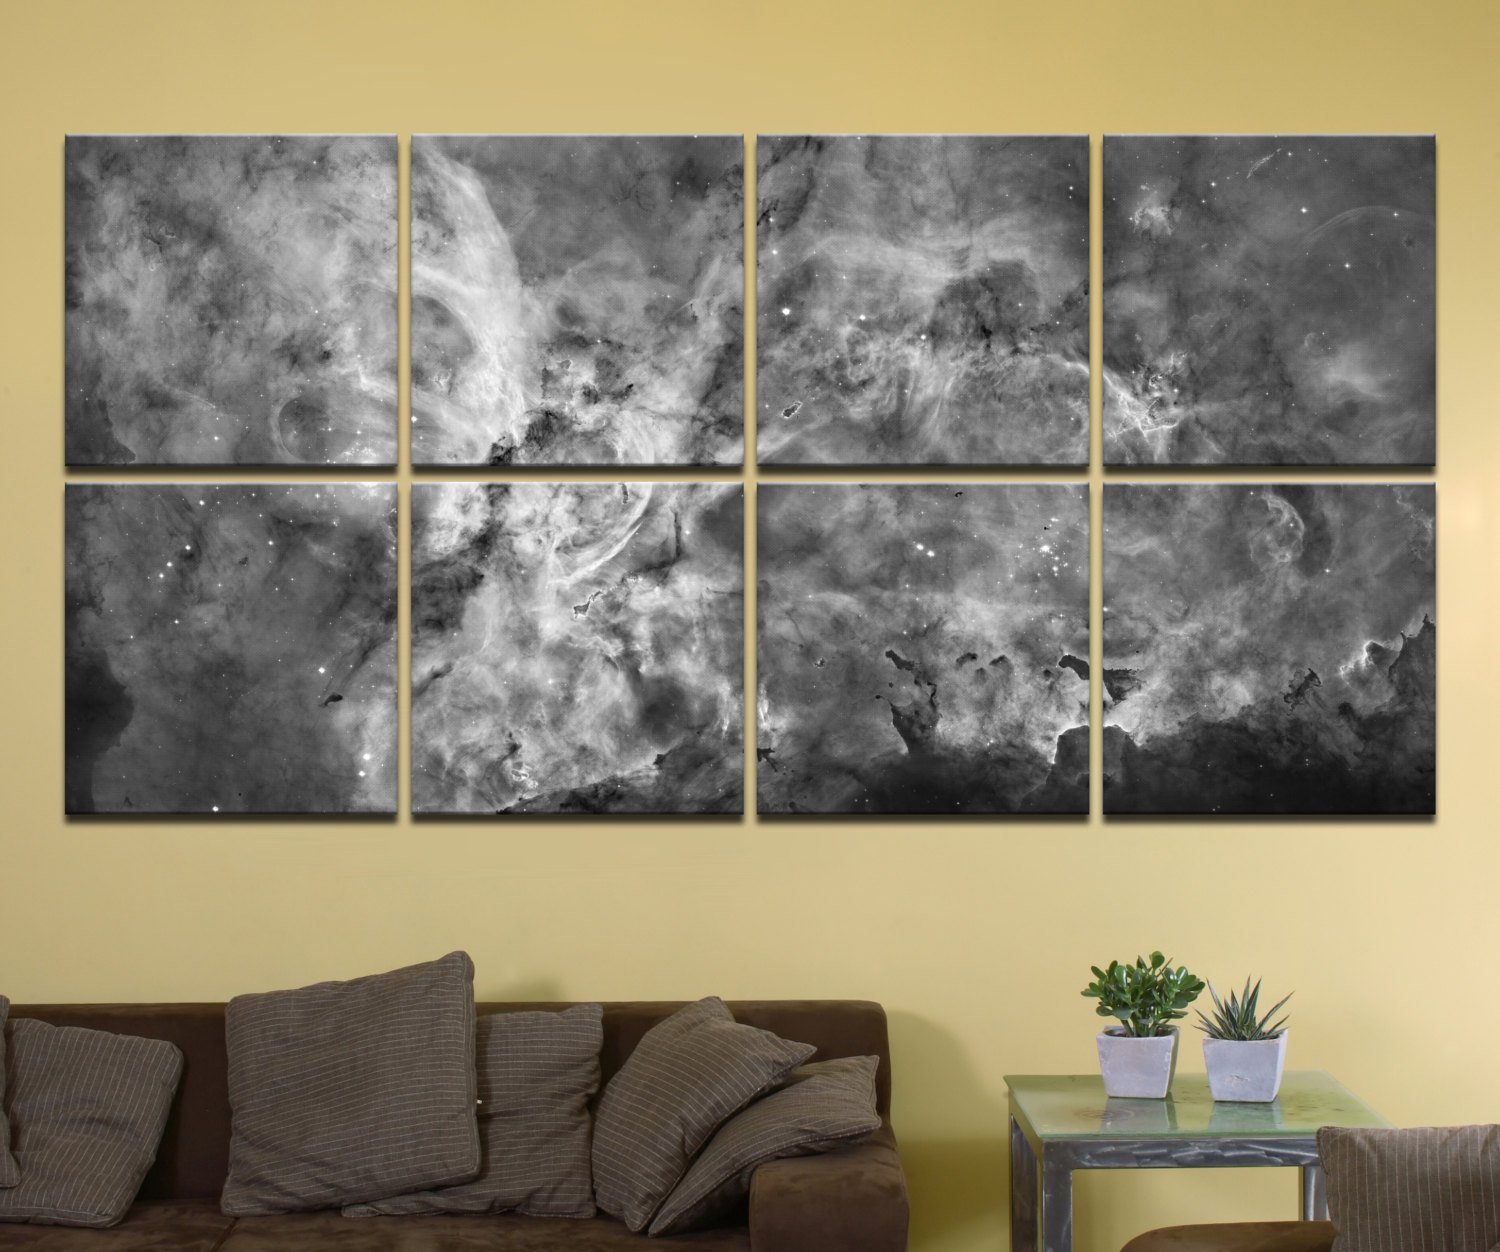 The Carina Nebula, Star Birth in the Extreme (Grayscale) – 80″ x 40″, GIANT 8-Piece Canvas Wall Mural